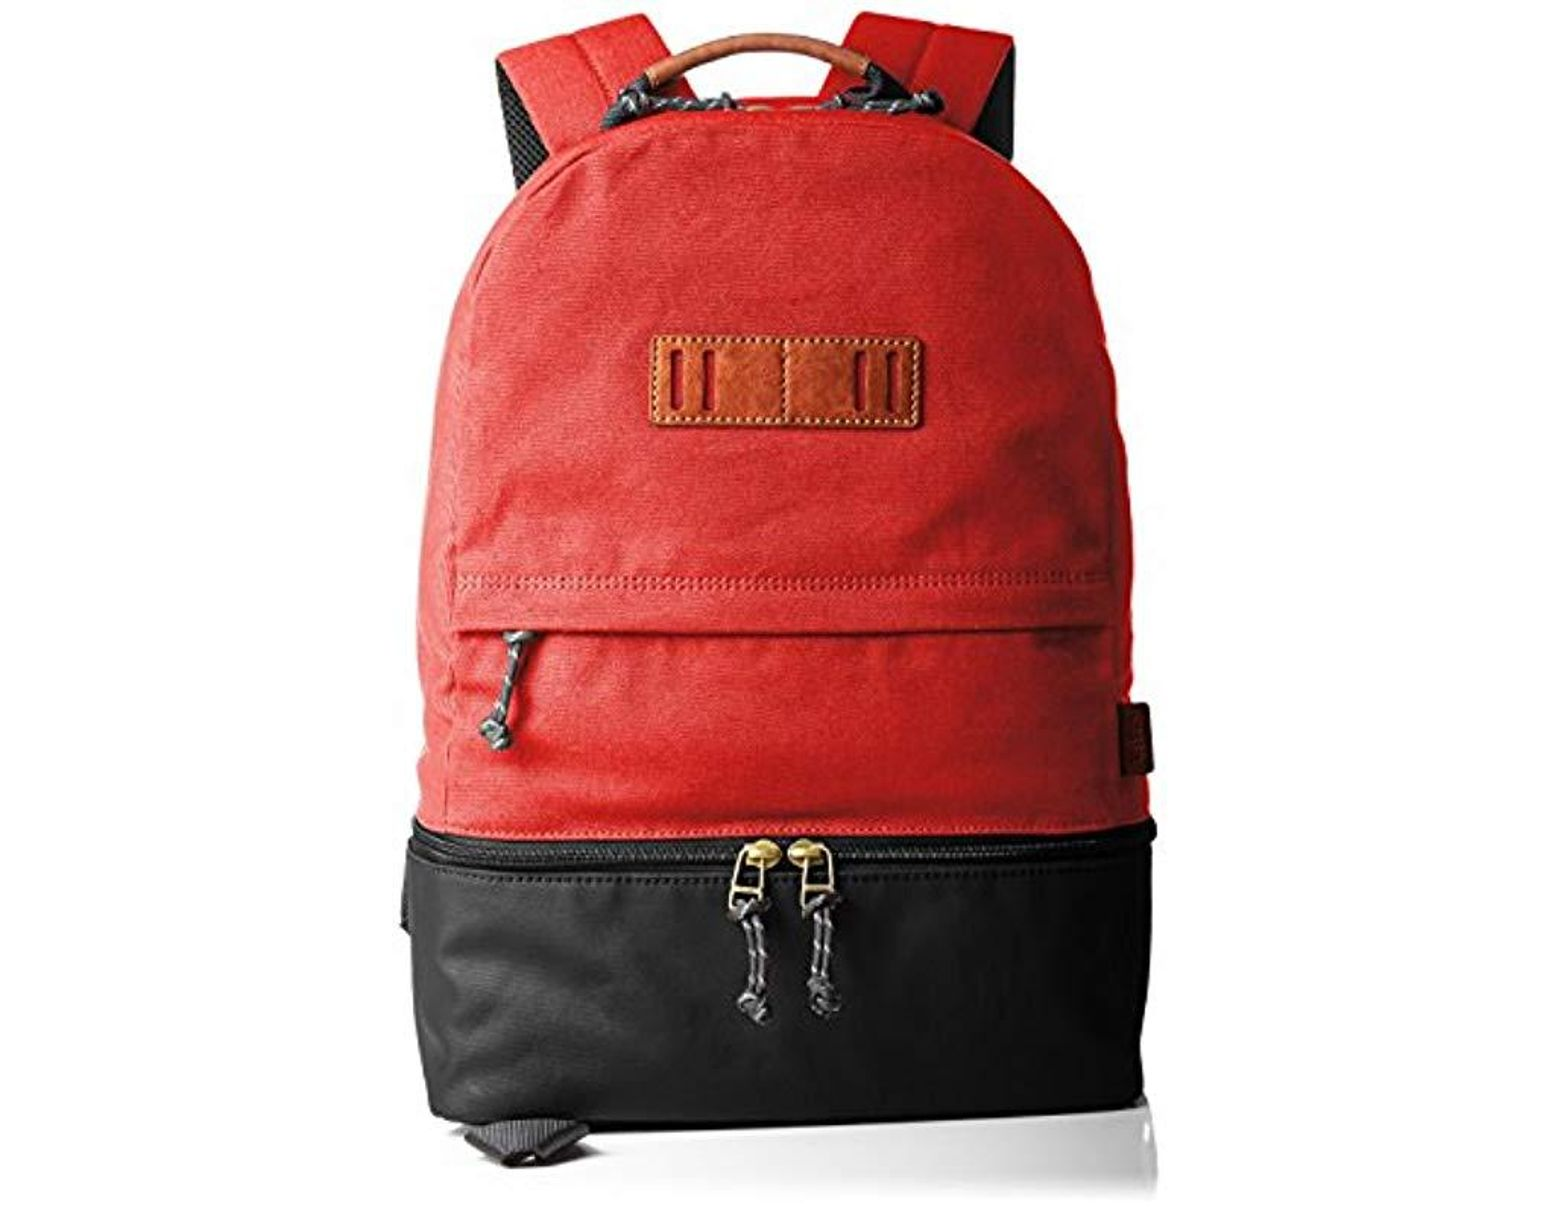 bac13c76fbe6a Fossil Herren Rucksack Summit in Red for Men - Lyst